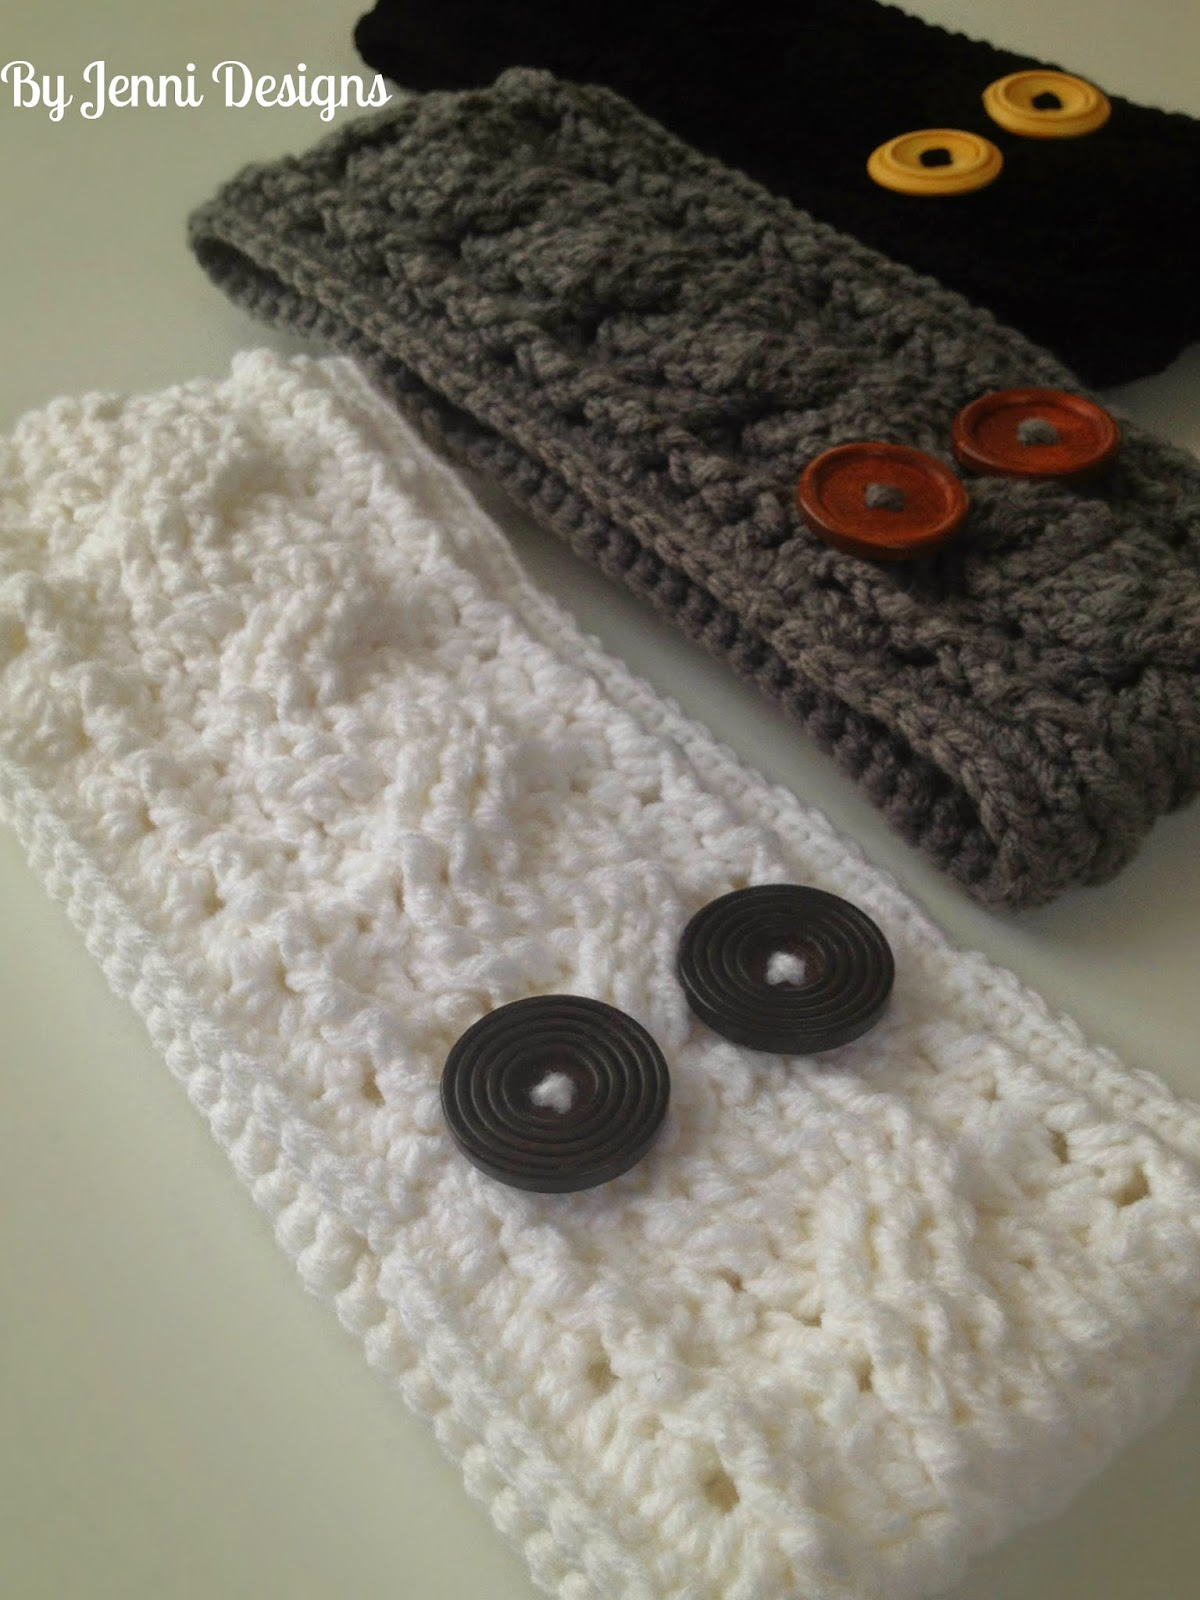 Free Crochet Pattern For A Ear Warmer : By Jenni Designs: Crochet Cable Ear Warmer Pattern